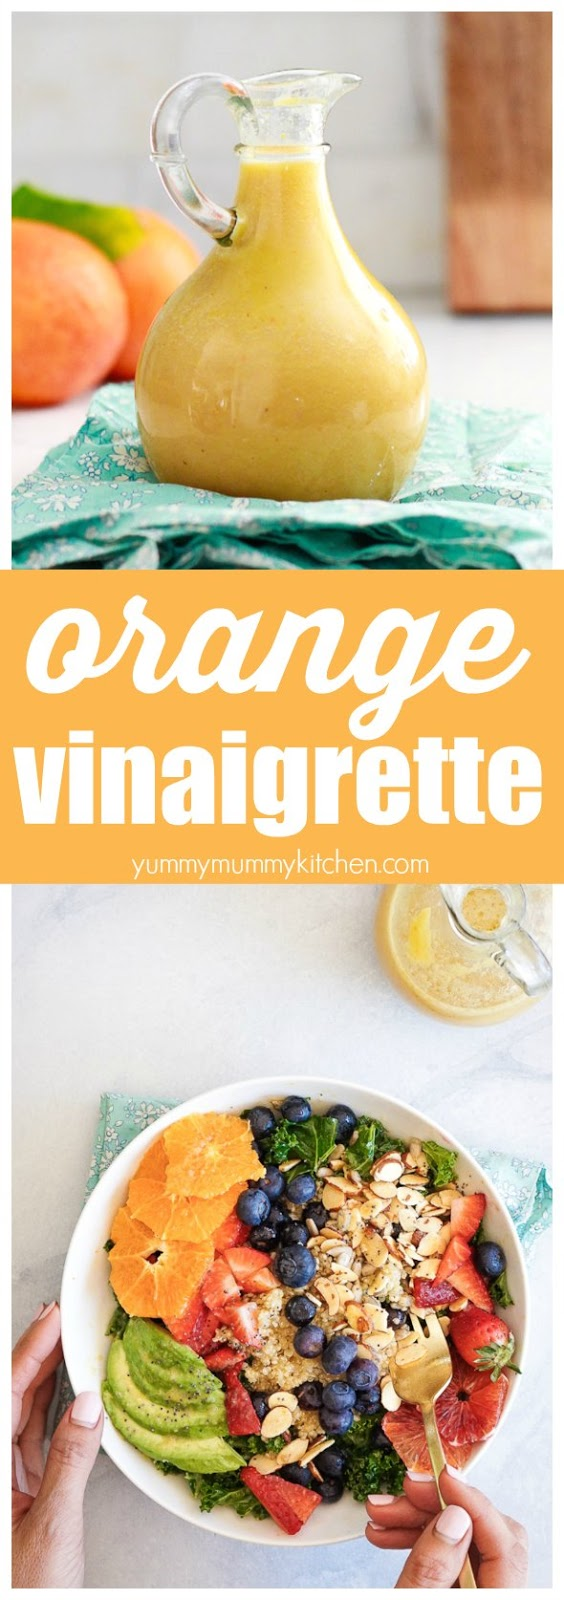 This easy orange citrus vinaigrette is made in the blender and is so delicious on green salads like this superfood kale salad with berries and quinoa. This is one of my favorite vegan, vegetarian, gluten-free lunch ideas!